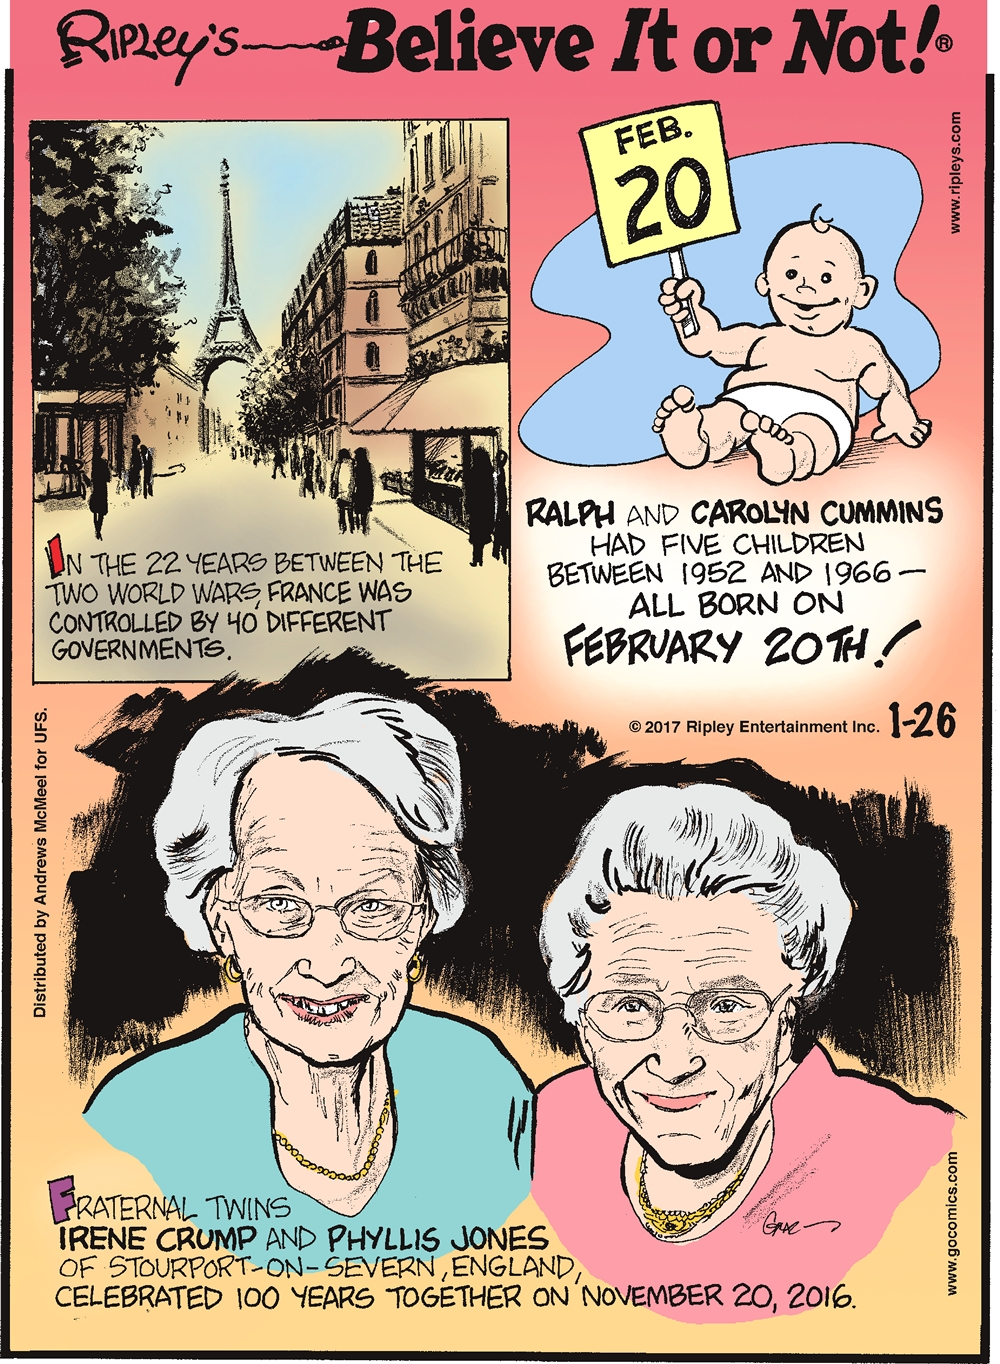 In the 22 years between the two World Wars, France was controlled by 40 different governments.--------------------- Ralph and Carolyn Cummins had five children between 1952 and 1966 - All born on February 20th!--------------------- Fraternal twins Irene Crump and Phyllis Jones of Stourport-on-Severn, England, celebrated 100 years together on November 20, 2016.